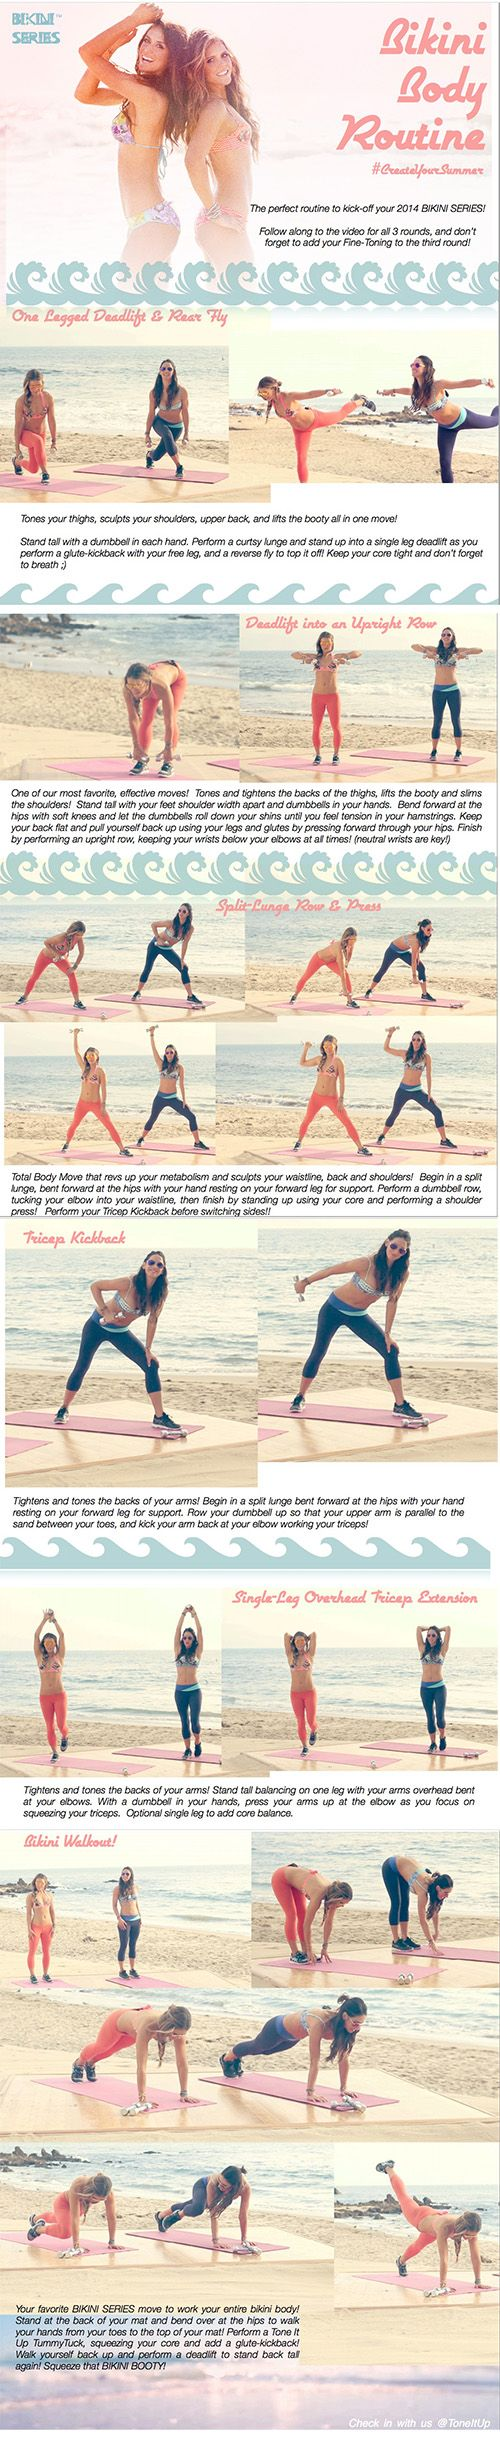 Bikini body workout from week one - I did this this evening and it really was awesome. Loved that they do a lot of compound moves and yet I could do everything!